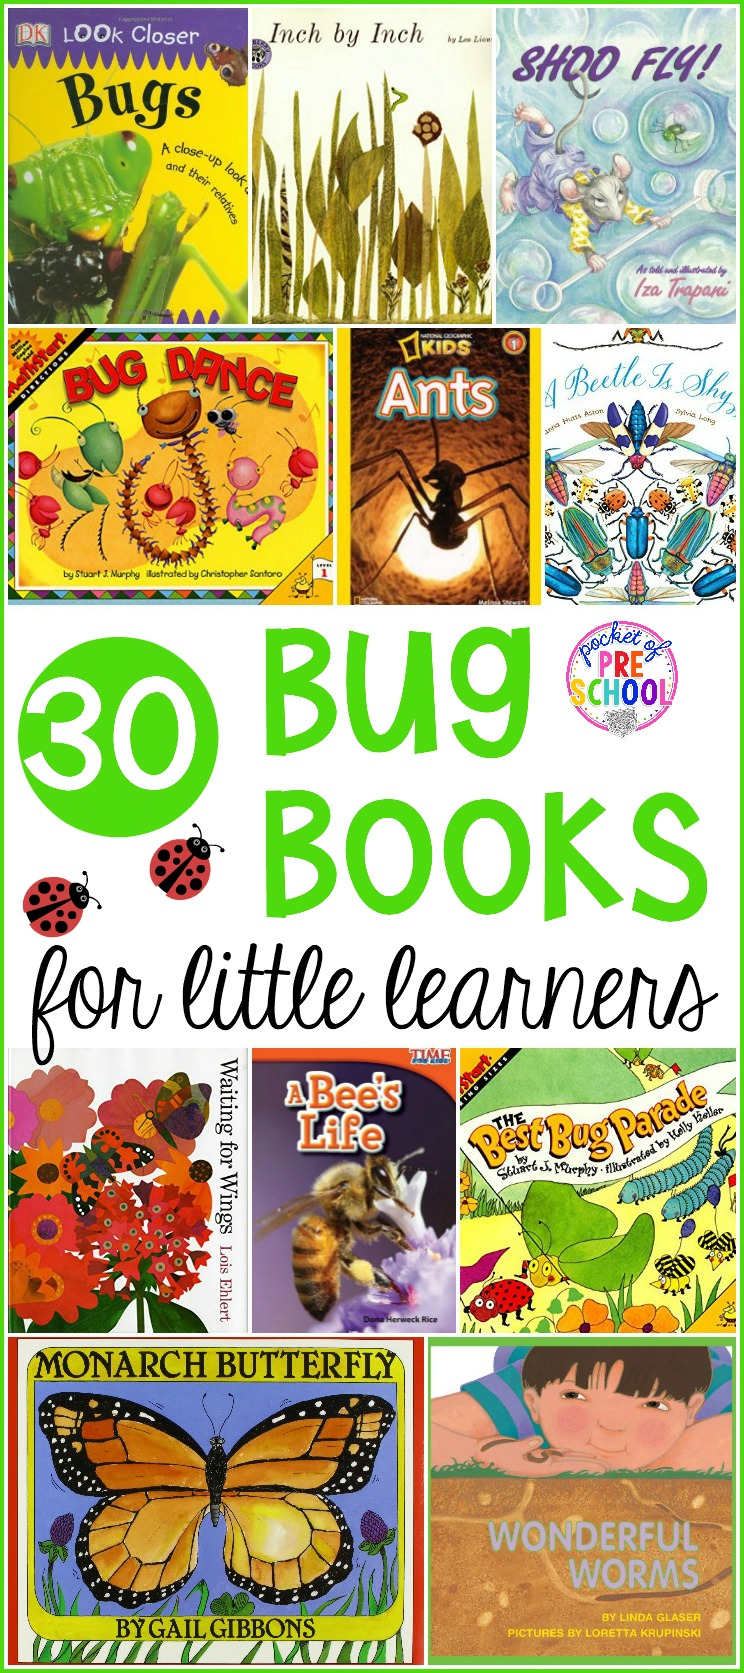 GIANT insect and bug book list full of our favorite insect books for circle time in our preschool, pre-k, and kindergarten classroom. #bugbooks #insectbooks #preschoolbooks #preschool #prek